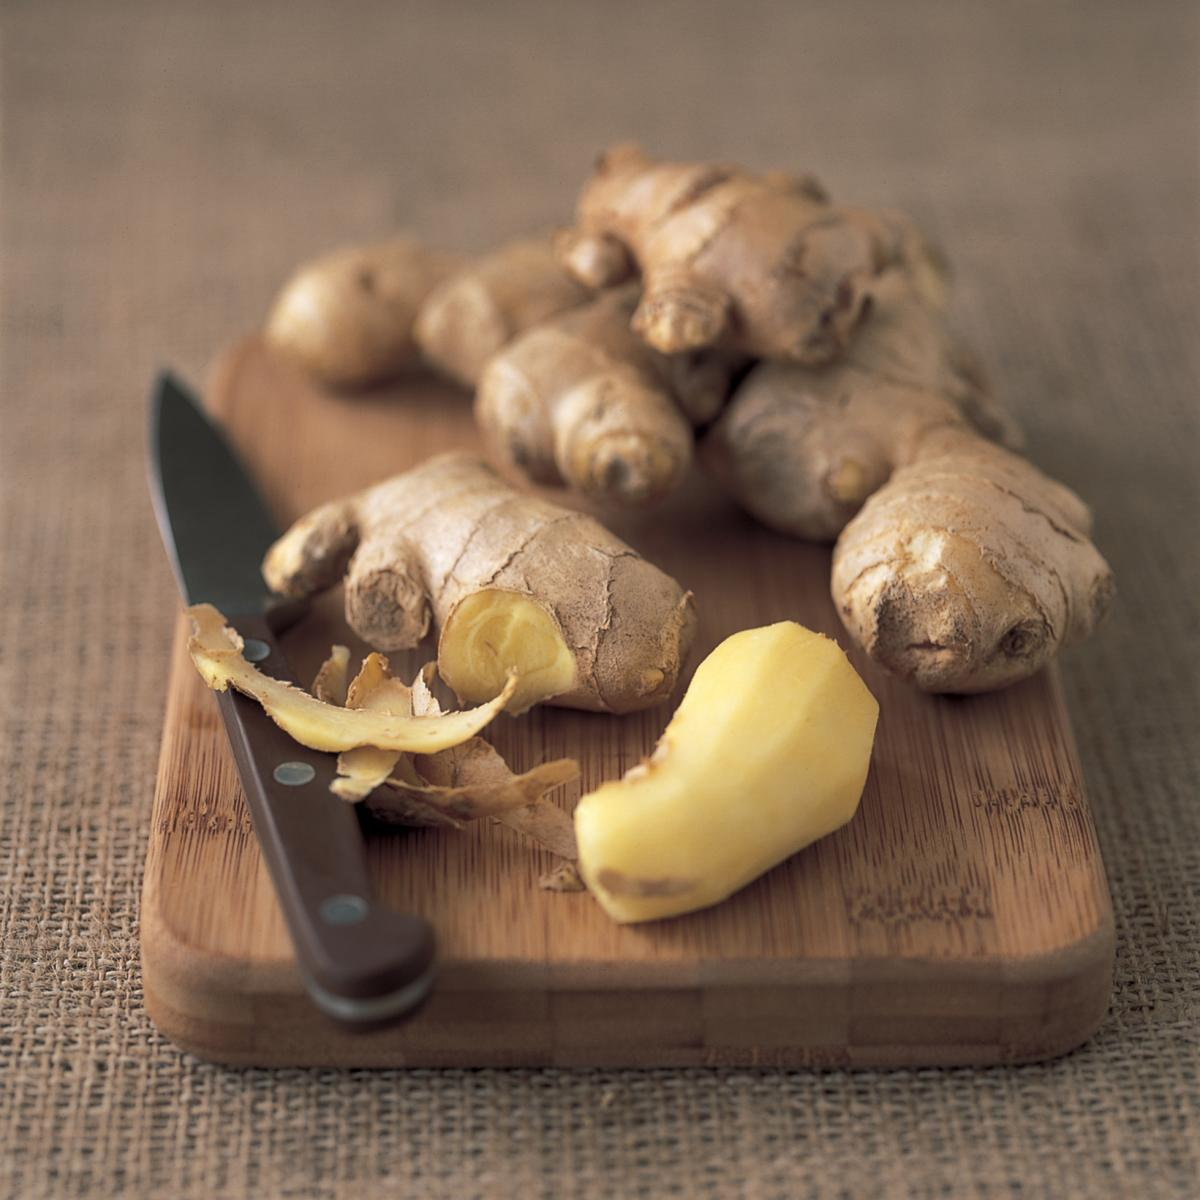 Ingredient fish ginger